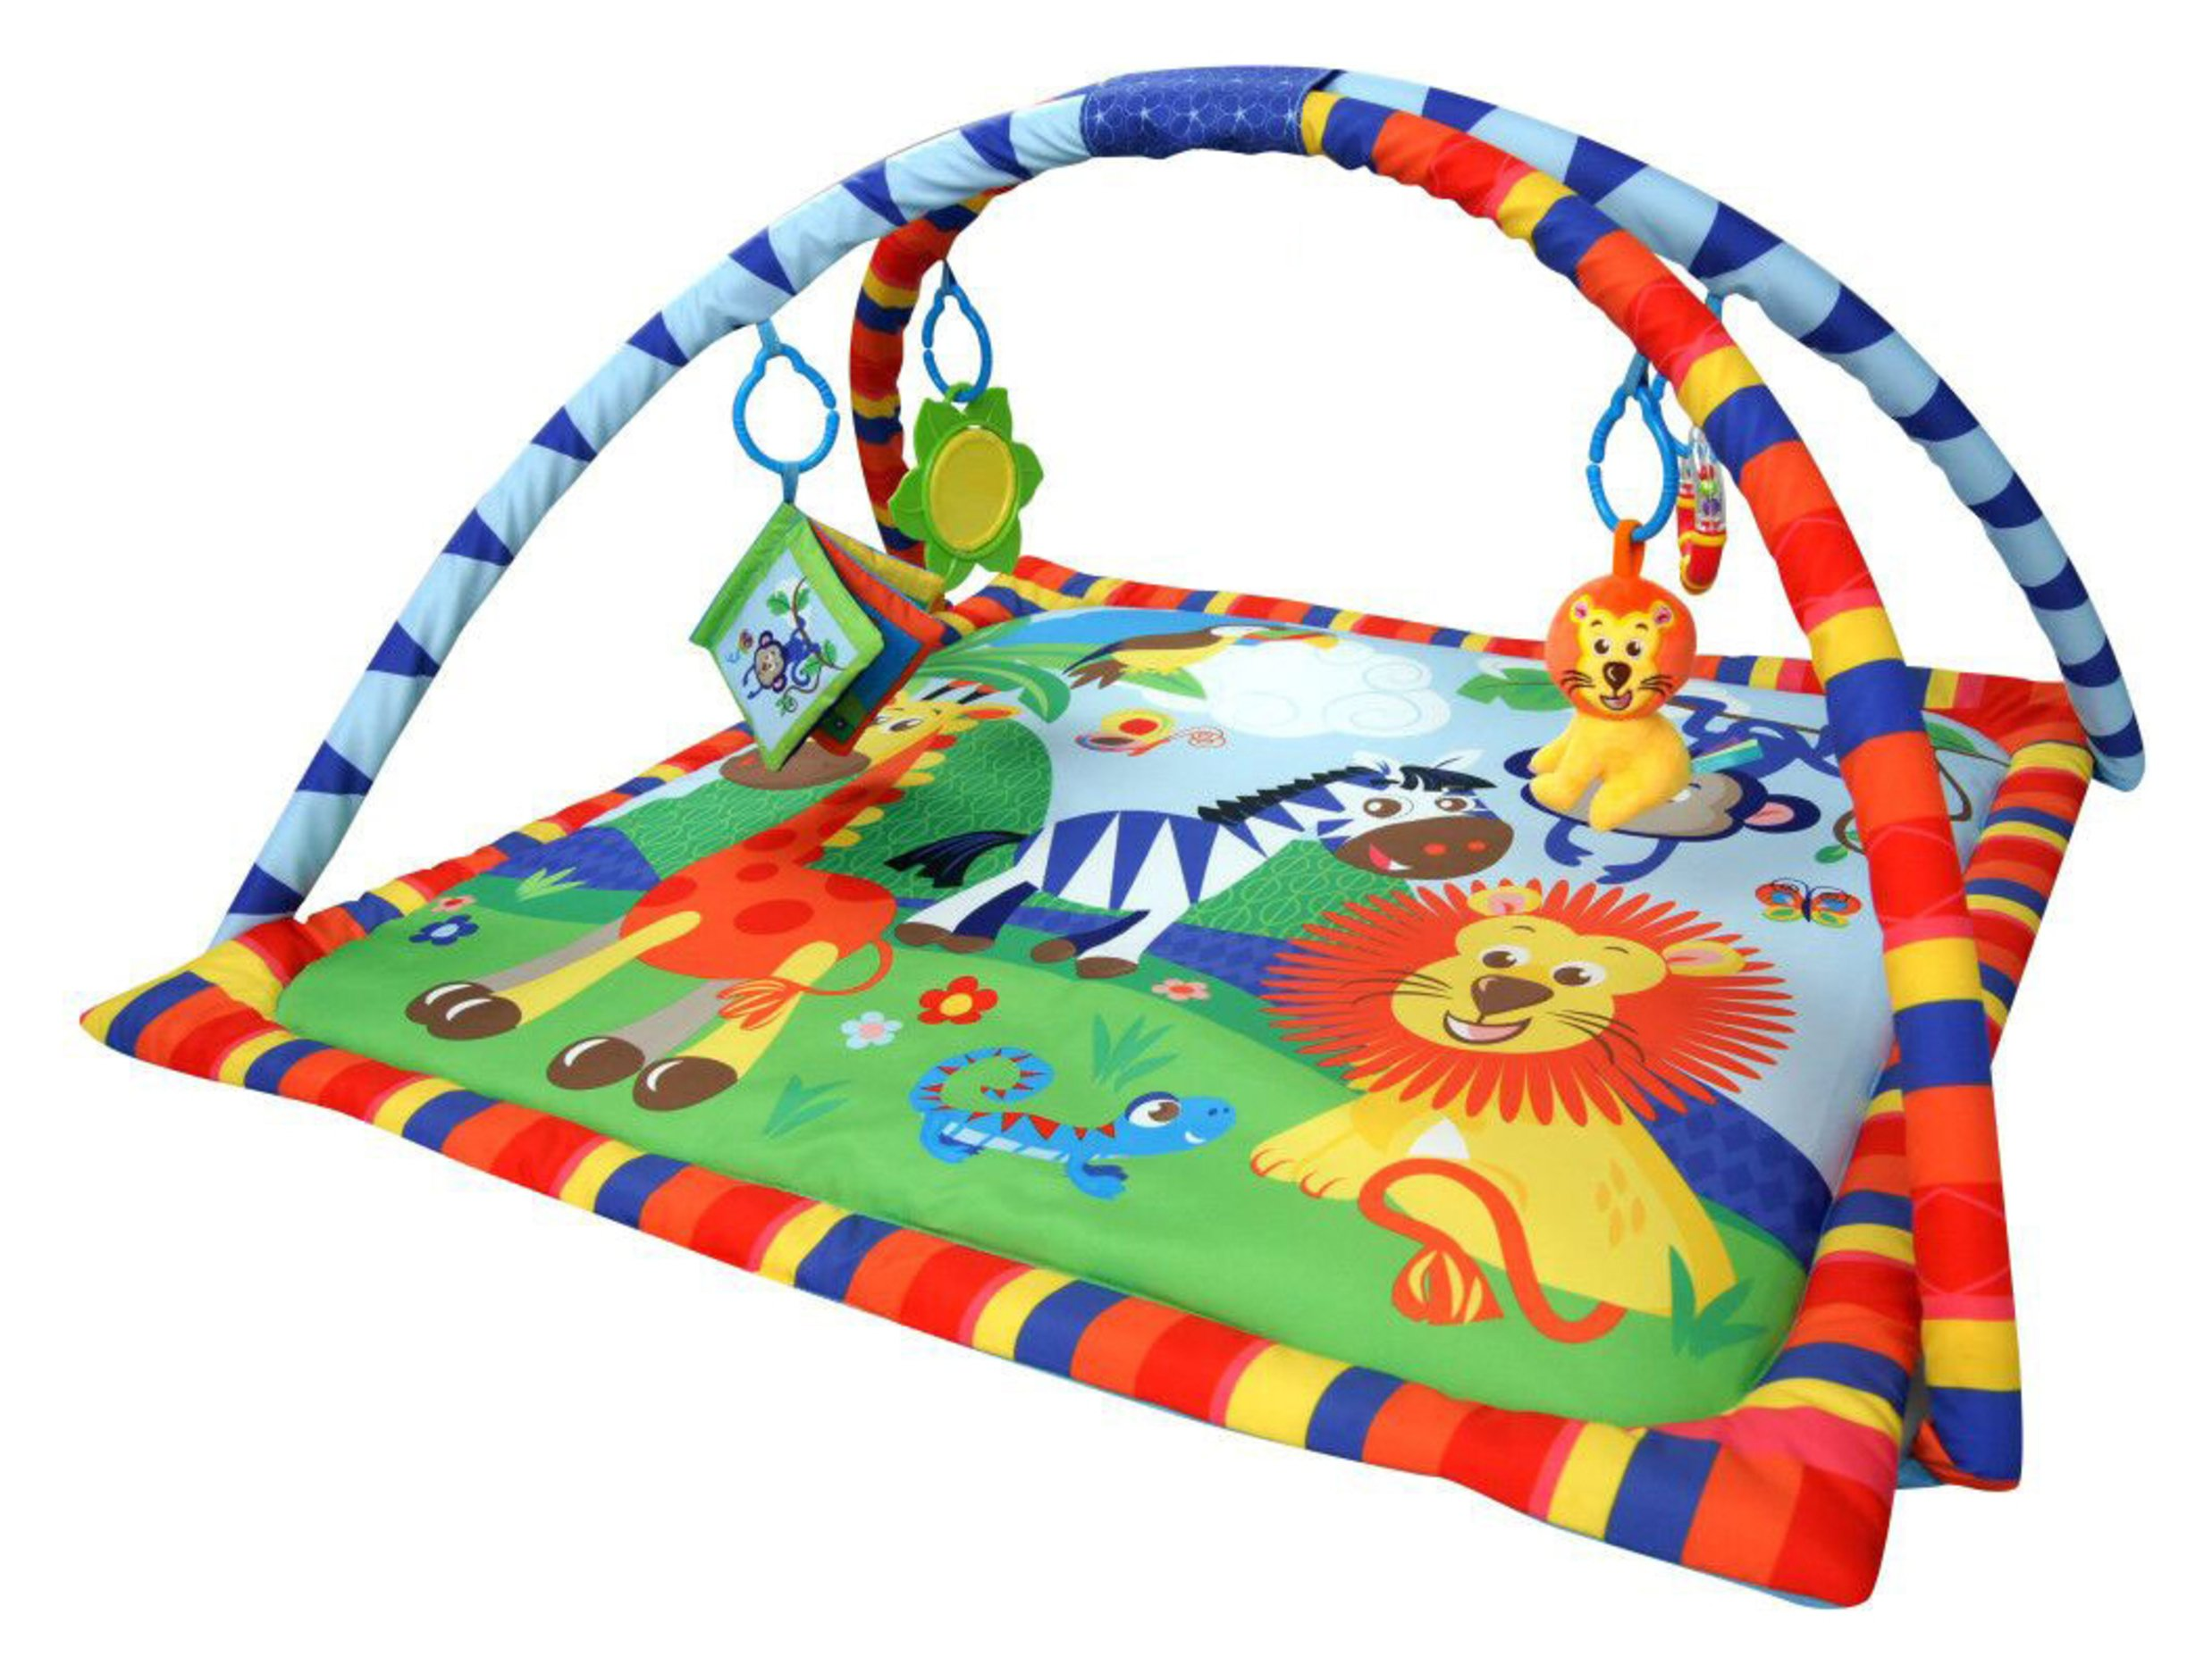 Bebe Style Animal World Play Mat